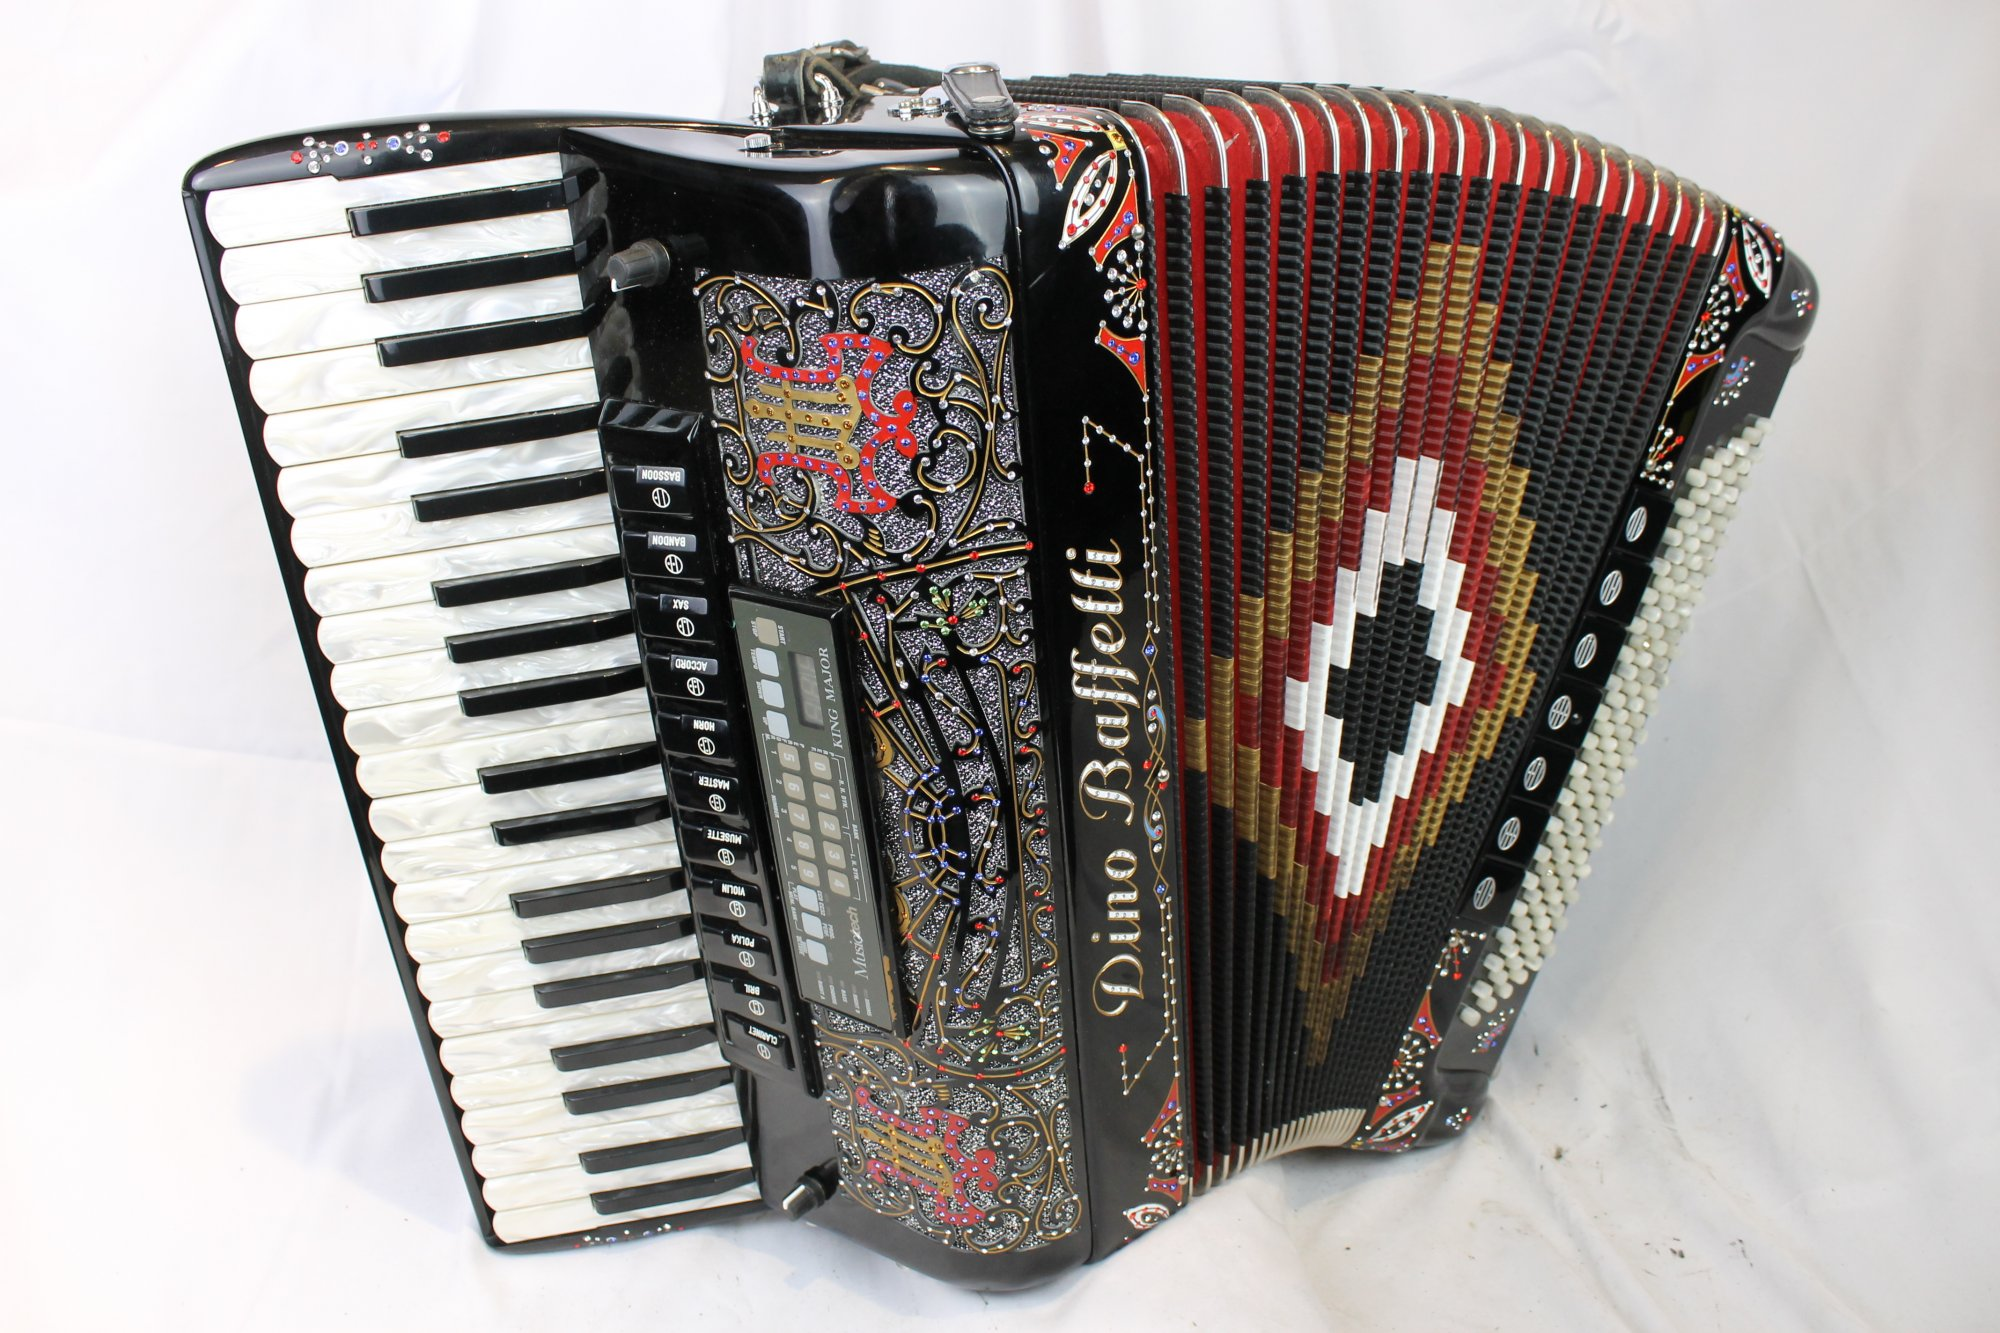 3771 - Black Decorated Dino Baffetti Piano Accordion LMMM 41 120